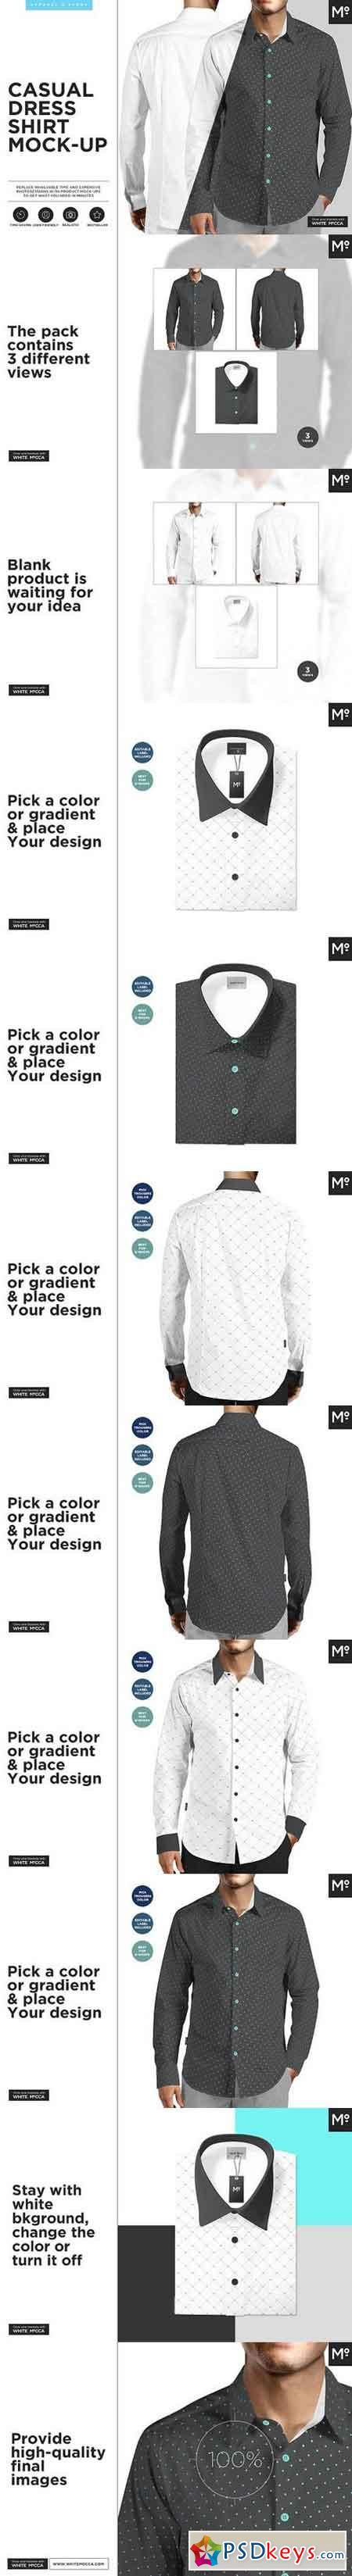 Casual Dress Shirt Mock-up 1470862 » Free Download Photoshop